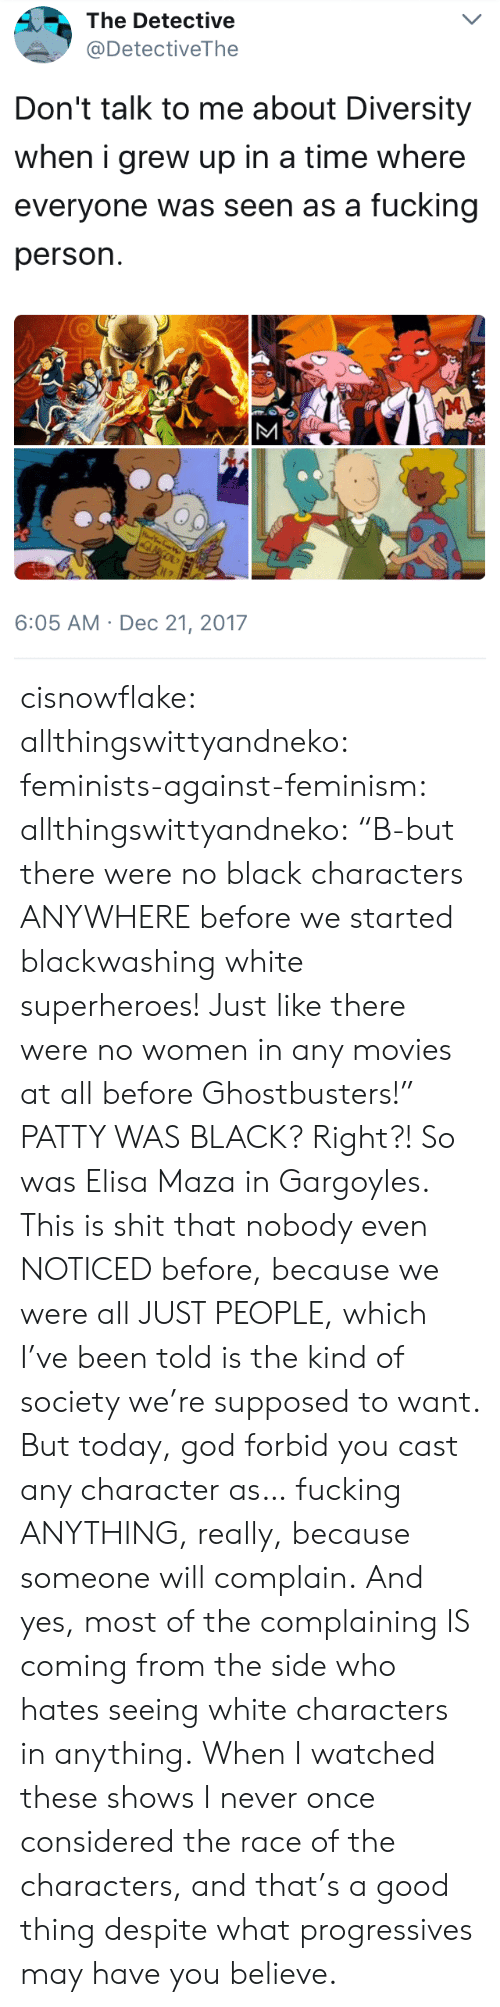 """Feminism, Fucking, and God: The Detective  @DetectiveThe  Don't talk to me about Diversity  when i grew up in a time where  everyone was seen as a fucking  person.  6:05 AM Dec 21, 2017 cisnowflake: allthingswittyandneko:  feminists-against-feminism:  allthingswittyandneko: """"B-but there were no black characters ANYWHERE before we started blackwashing white superheroes! Just like there were no women in any movies at all before Ghostbusters!"""" PATTY WAS BLACK?  Right?! So was Elisa Maza in Gargoyles.  This is shit that nobody even NOTICED before, because we were all JUST PEOPLE, which I've been told is the kind of society we're supposed to want. But today, god forbid you cast any character as… fucking ANYTHING, really, because someone will complain. And yes, most of the complaining IS coming from the side who hates seeing white characters in anything.  When I watched these shows I never once considered the race of the characters, and that's a good thing despite what progressives may have you believe."""